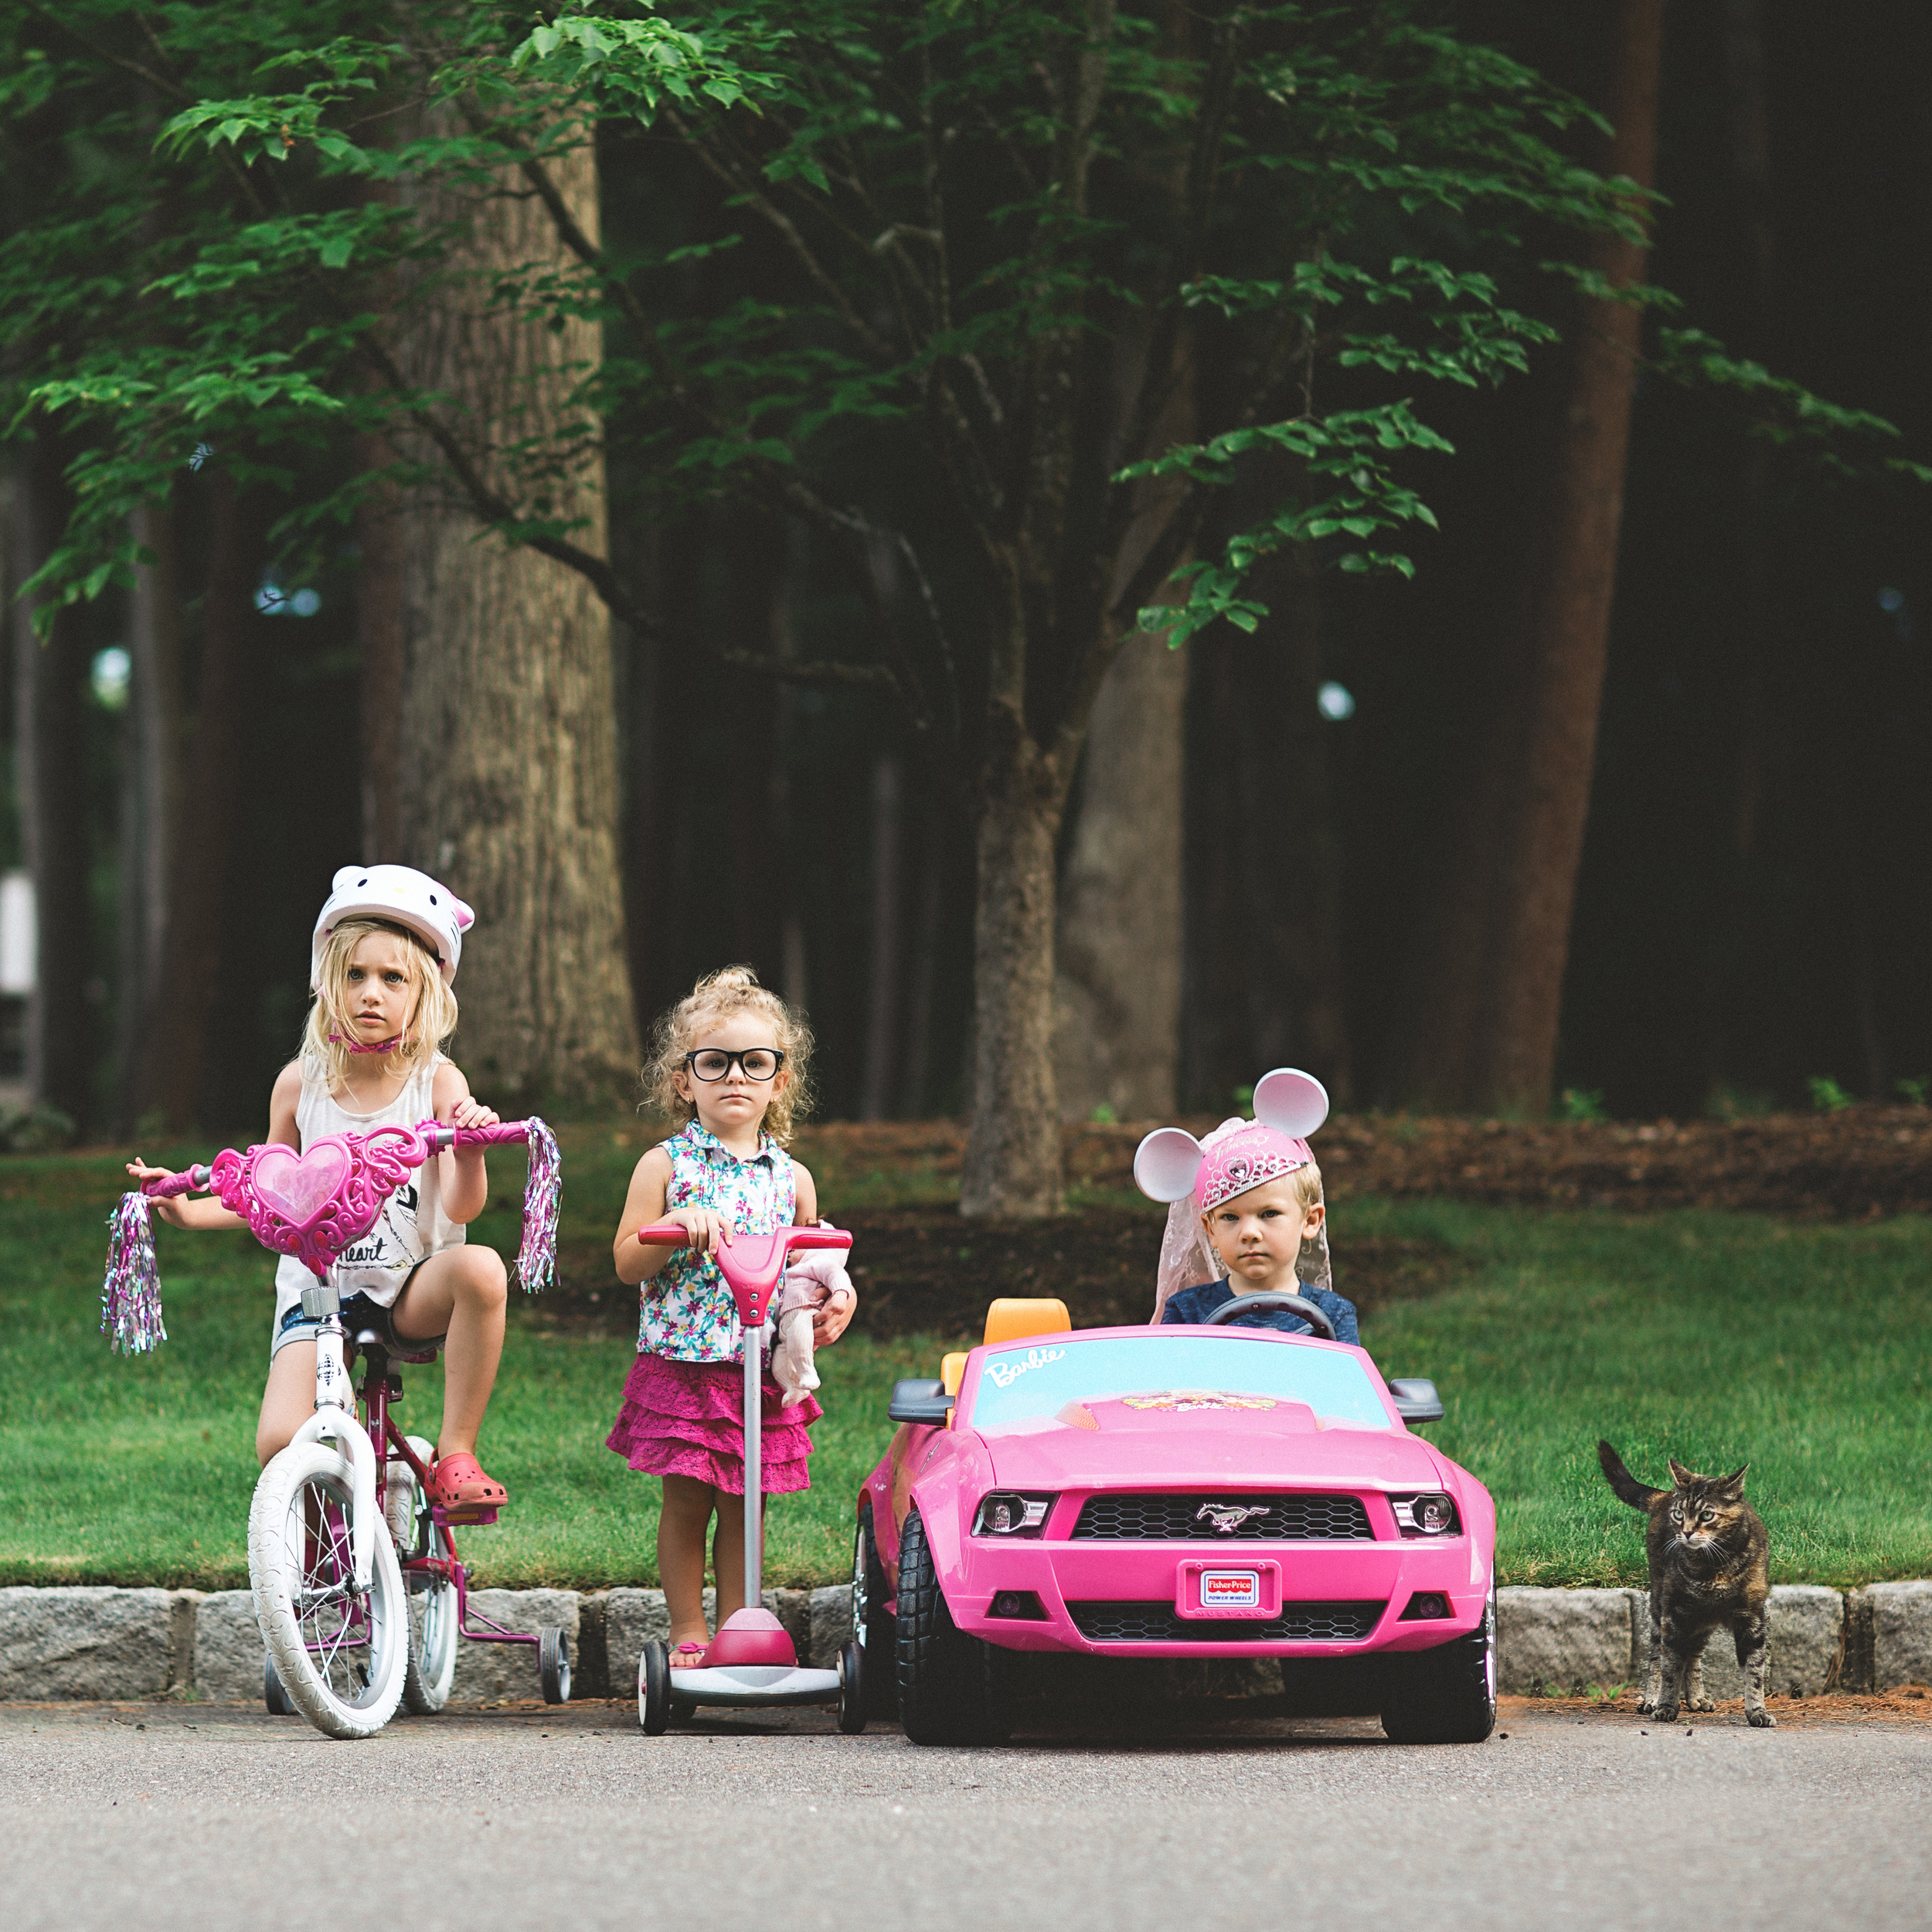 Long-island-photographer-hello-olivia-photography-family-child-dress-suffolk-the-usual-suspects.jpg